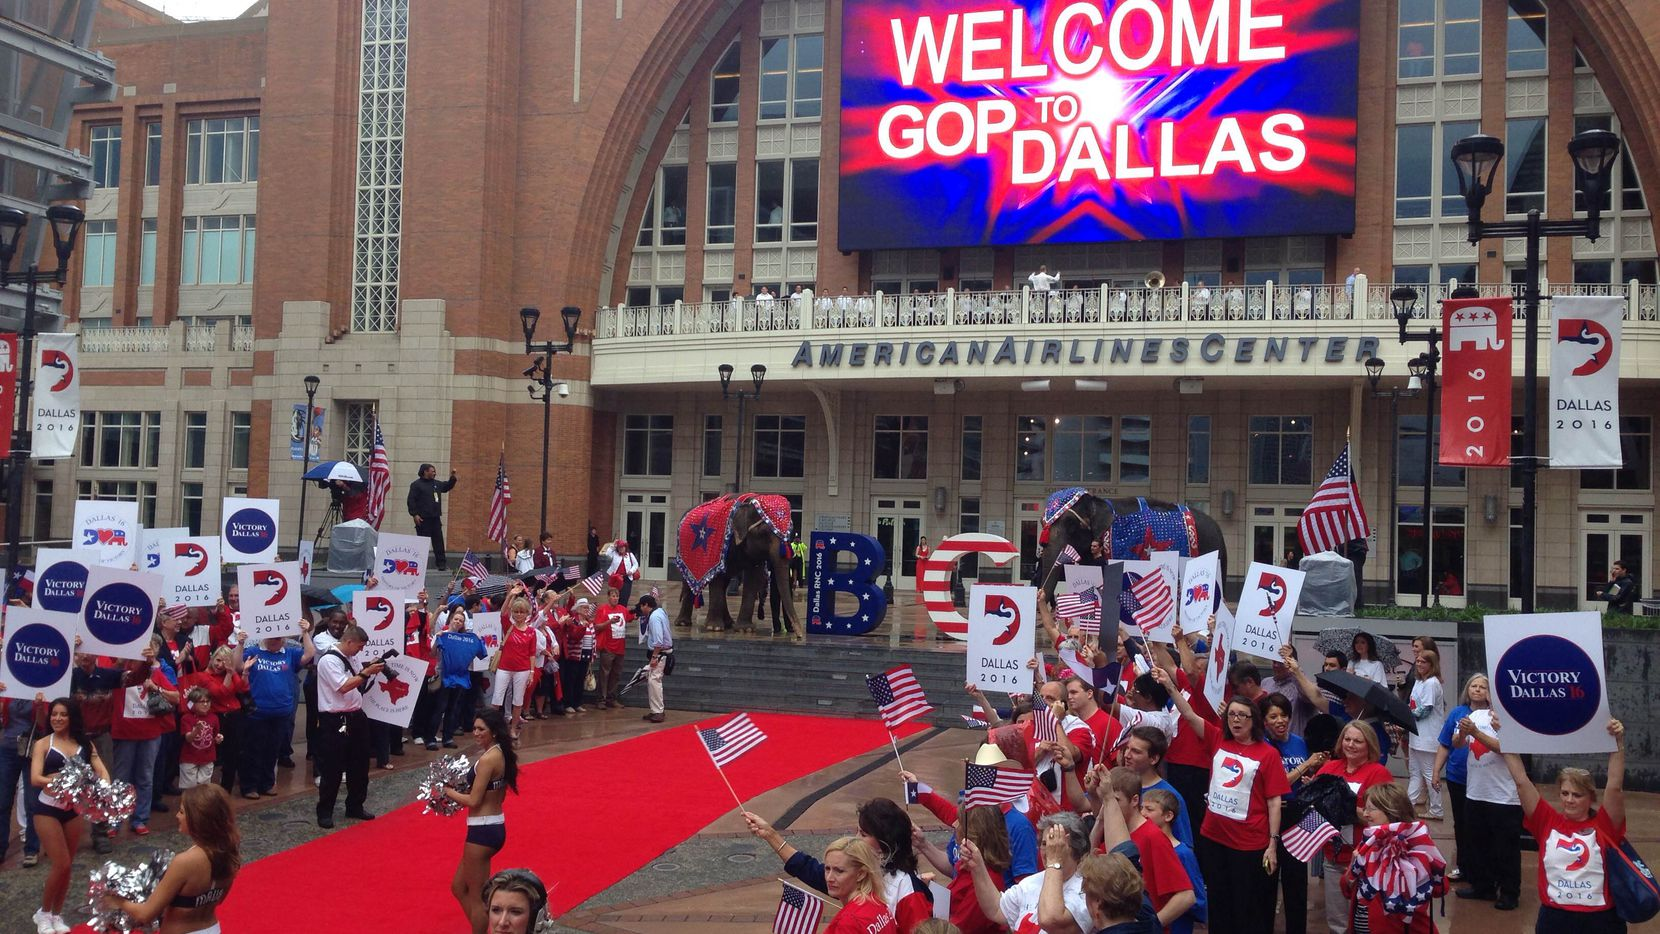 Dallas welcomed the Republican National Convention host committee at American Airlines Center on June 12, 2014.